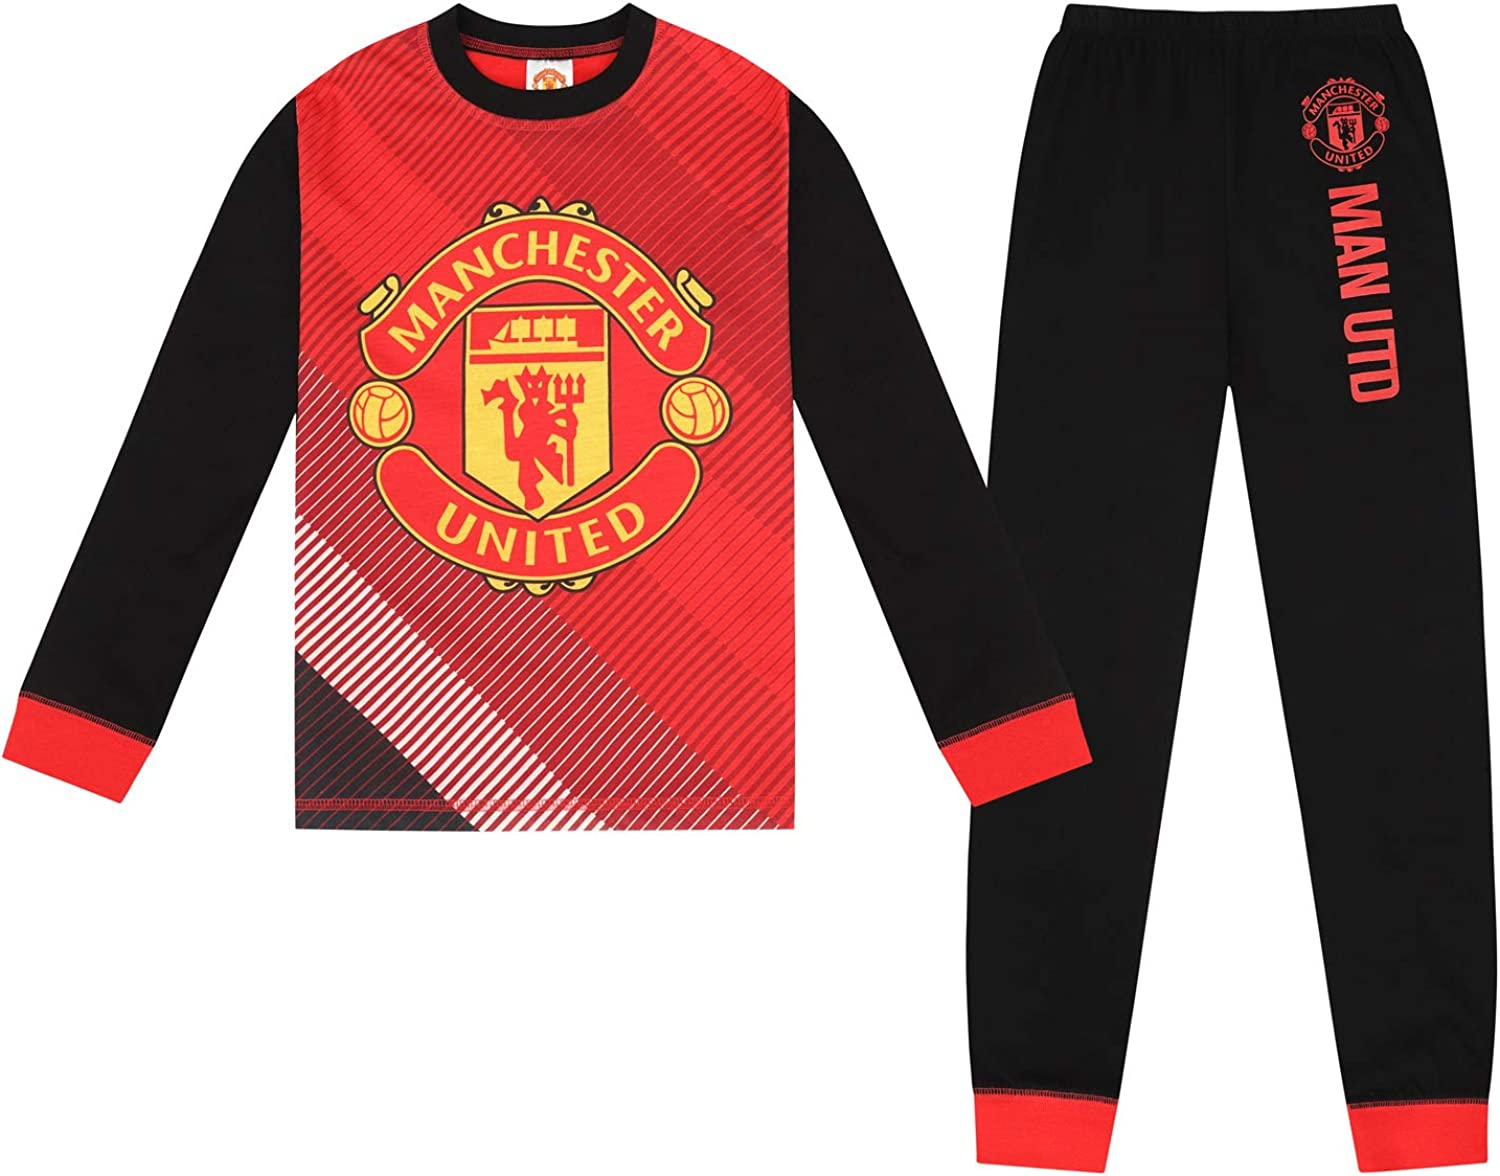 Details about  /Licensed Official Boys Manchester United Pyjama Pjs MUFC Fan Gift Idea 5 sizes